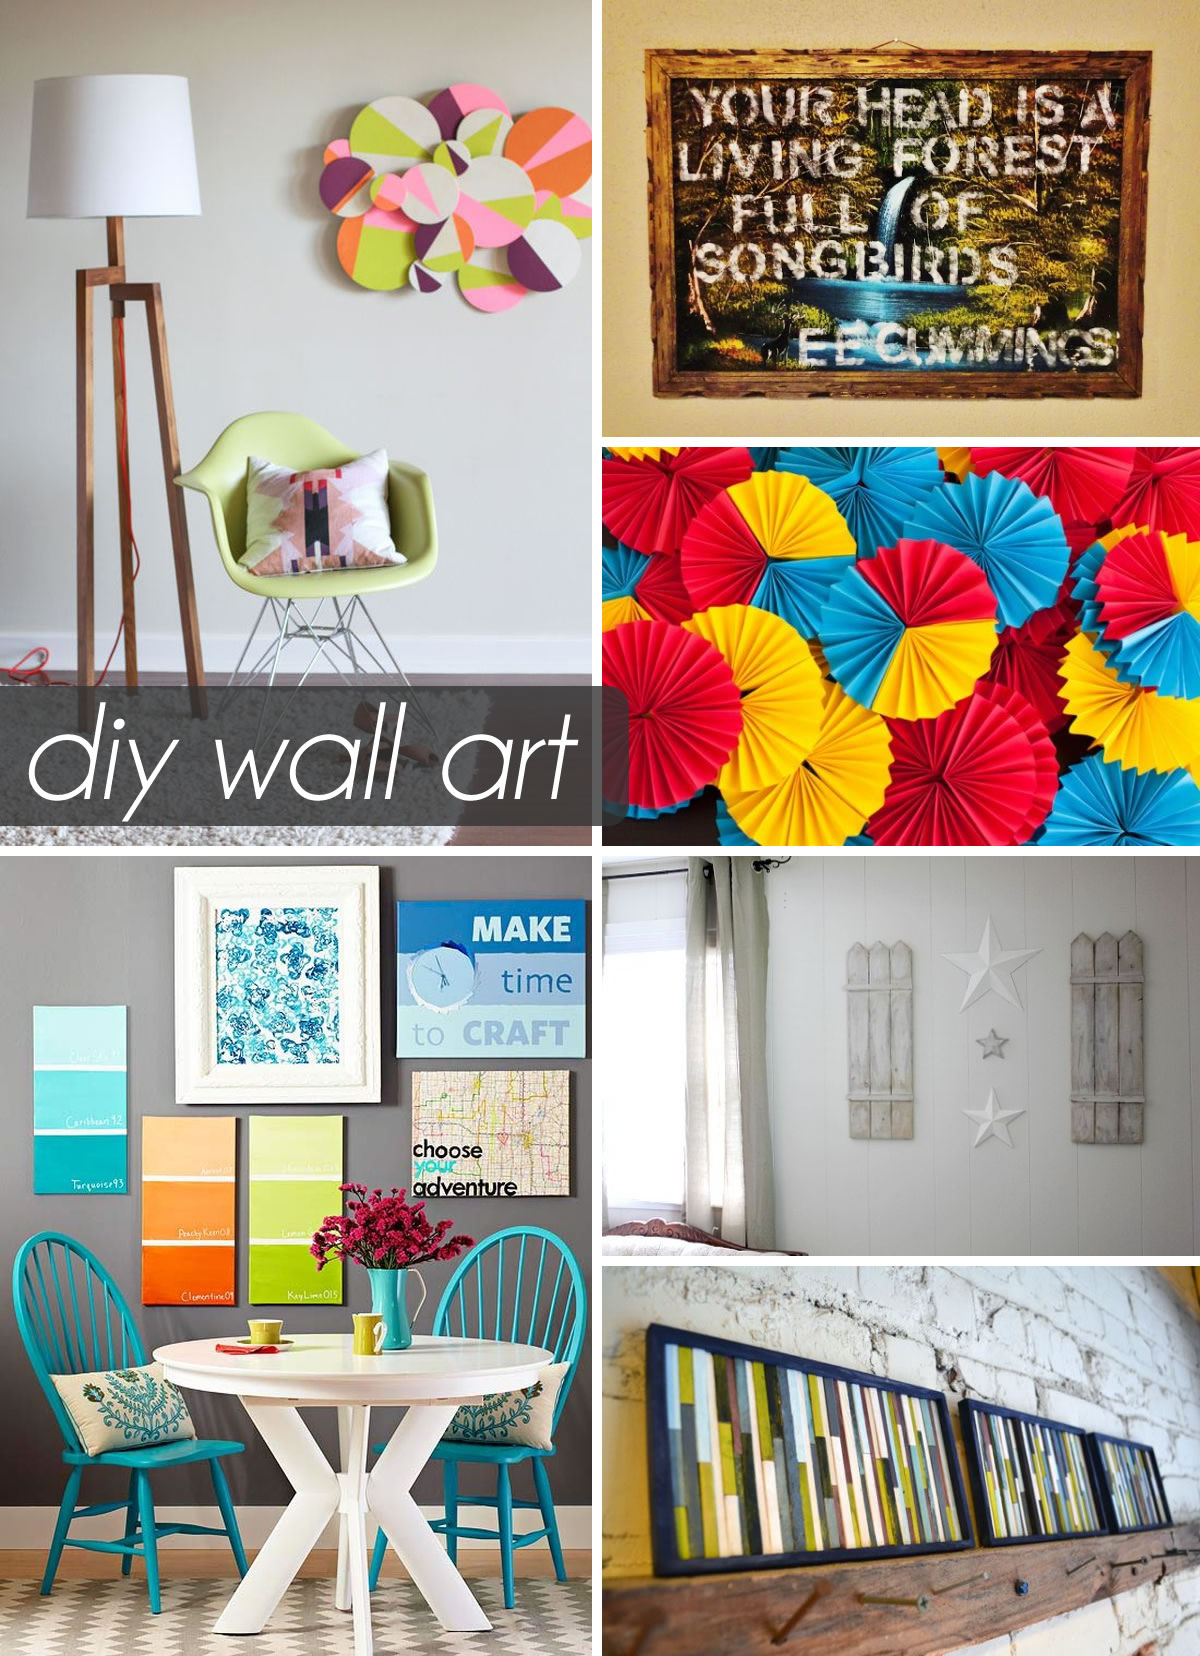 High Quality 50 Beautiful DIY Wall Art Ideas For Your Home